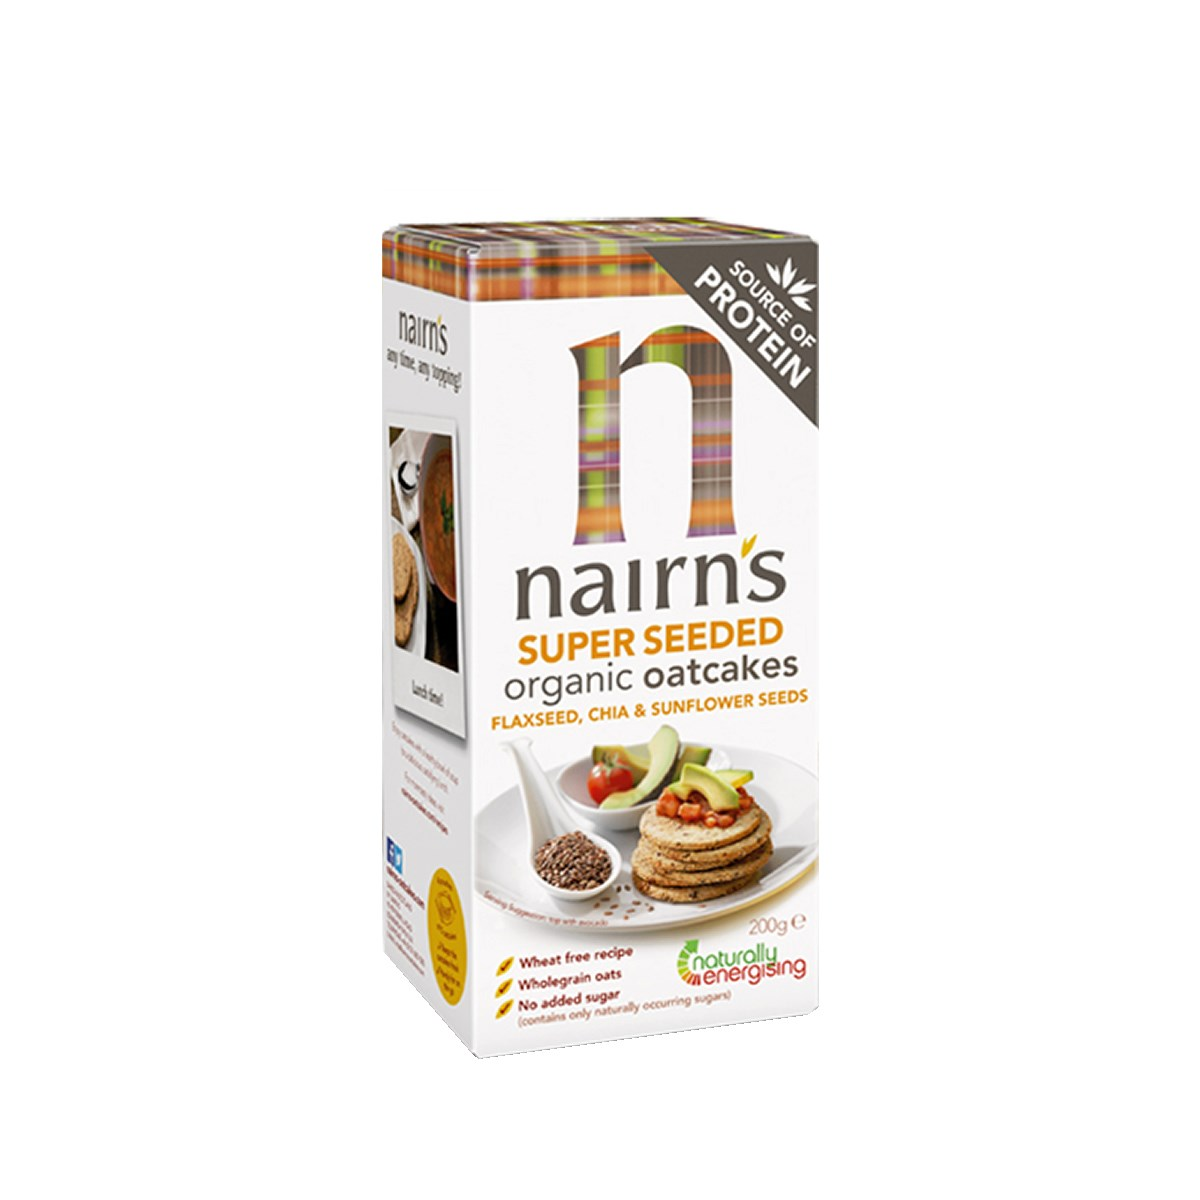 Nairn's Super Seeded Organic Oatcakes